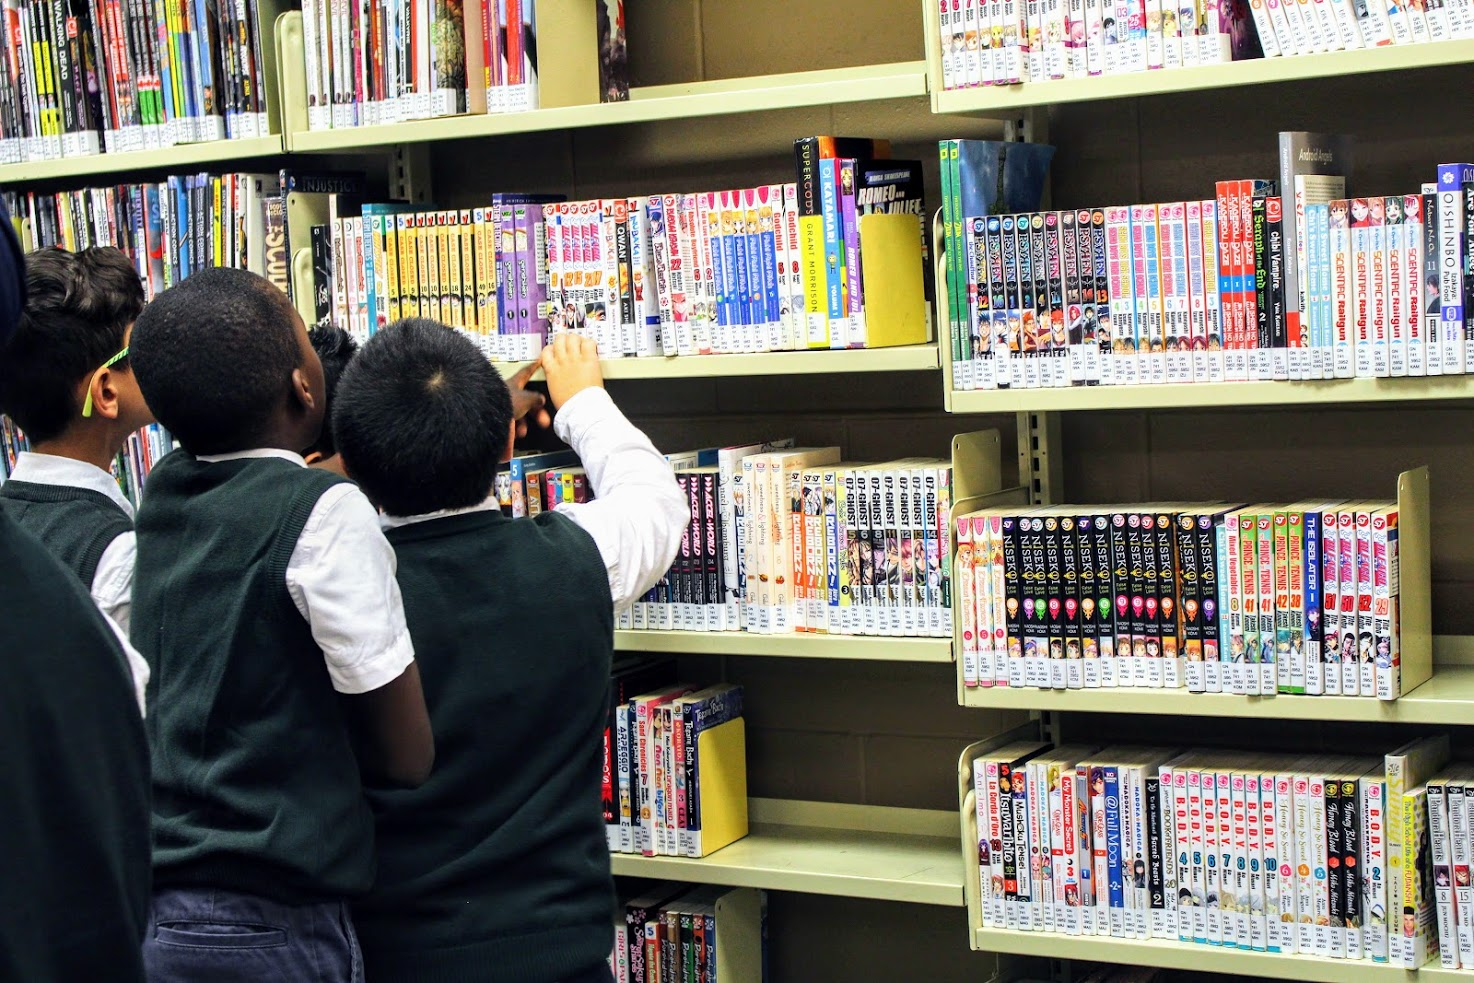 Children Browsing the graphic novel section